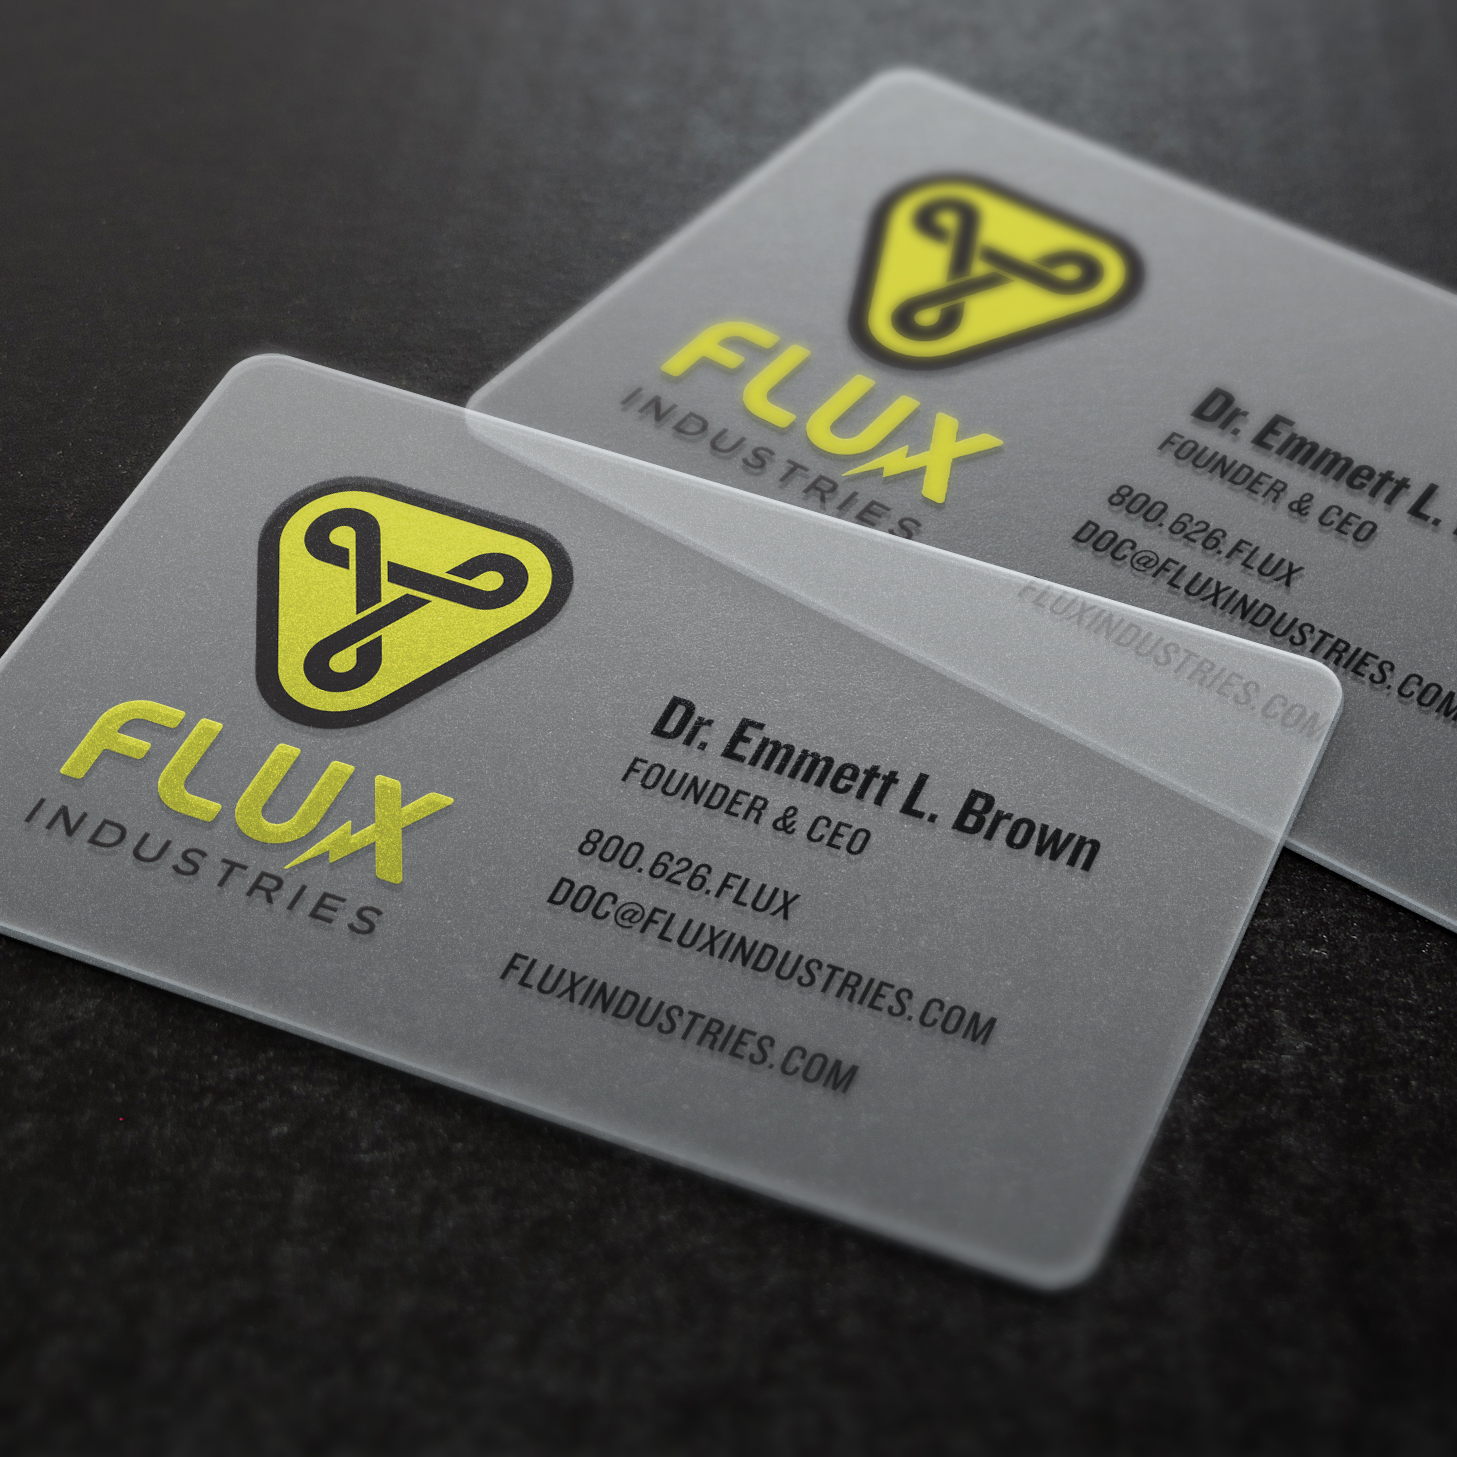 Translucent,  dust-repellent  business cards.